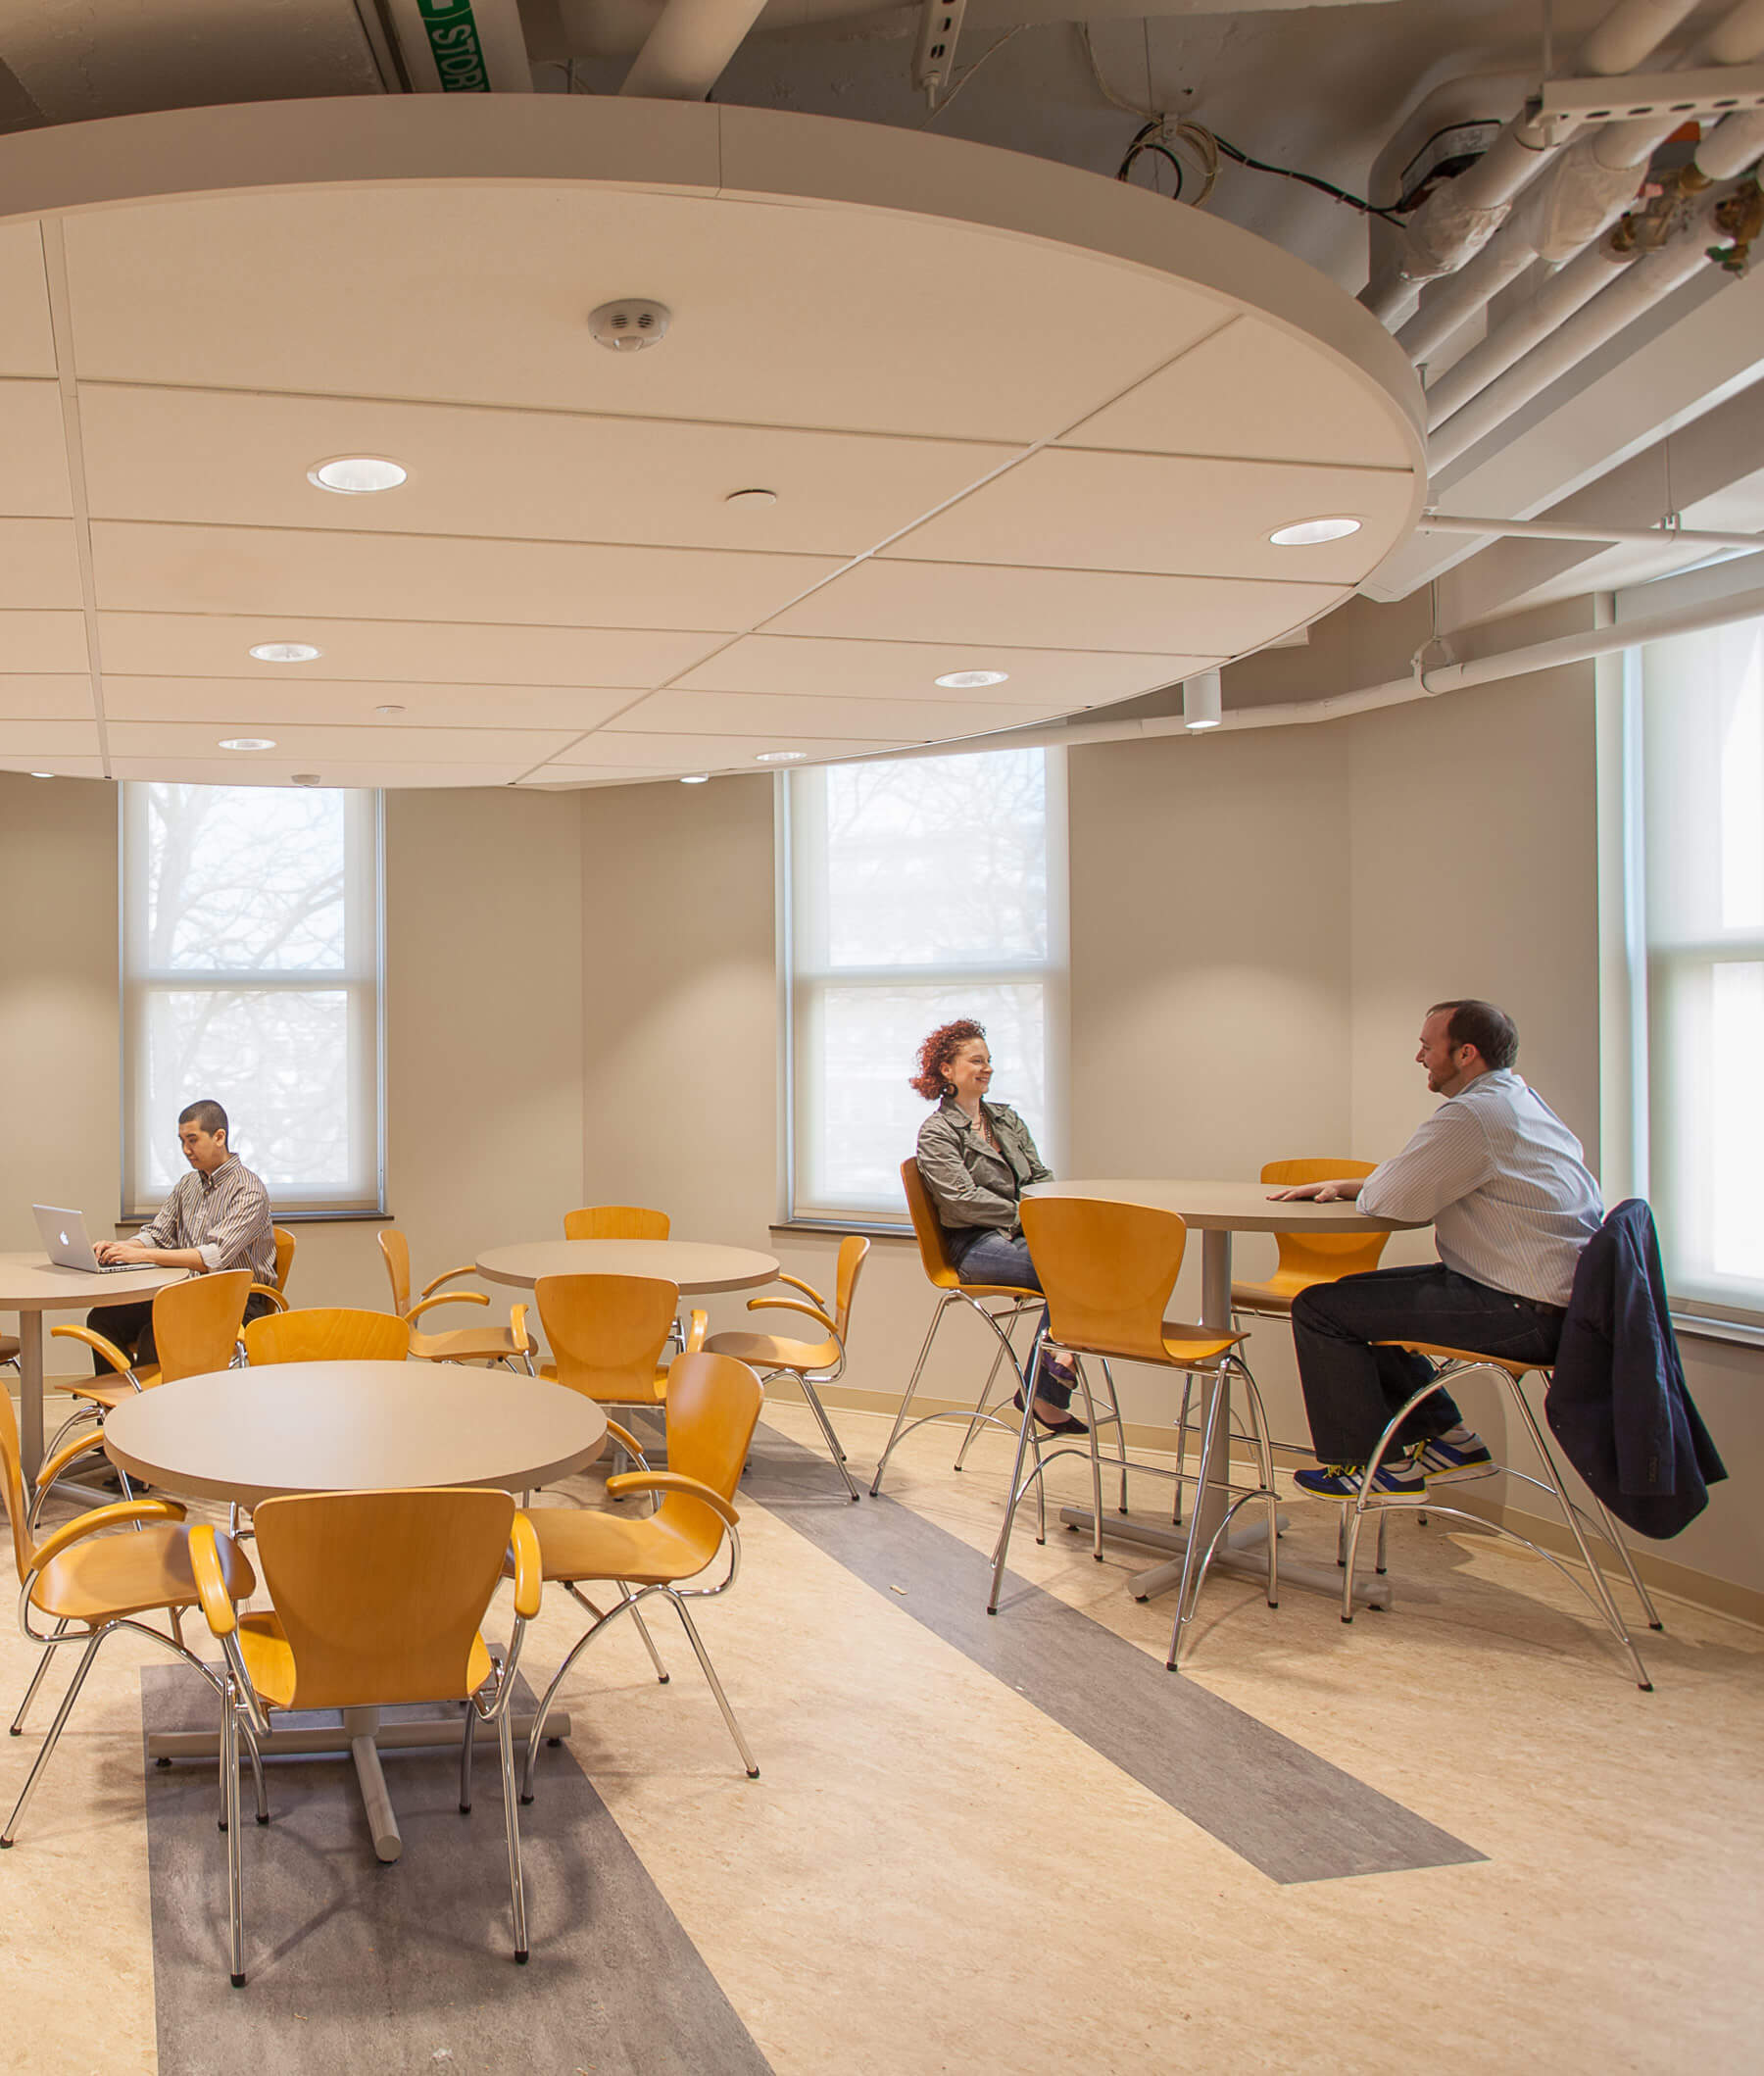 Casual dining space with office colleagues at the Cambridge Housing Authority, showing warm finishes, natural daylight and also exposed MEP systems